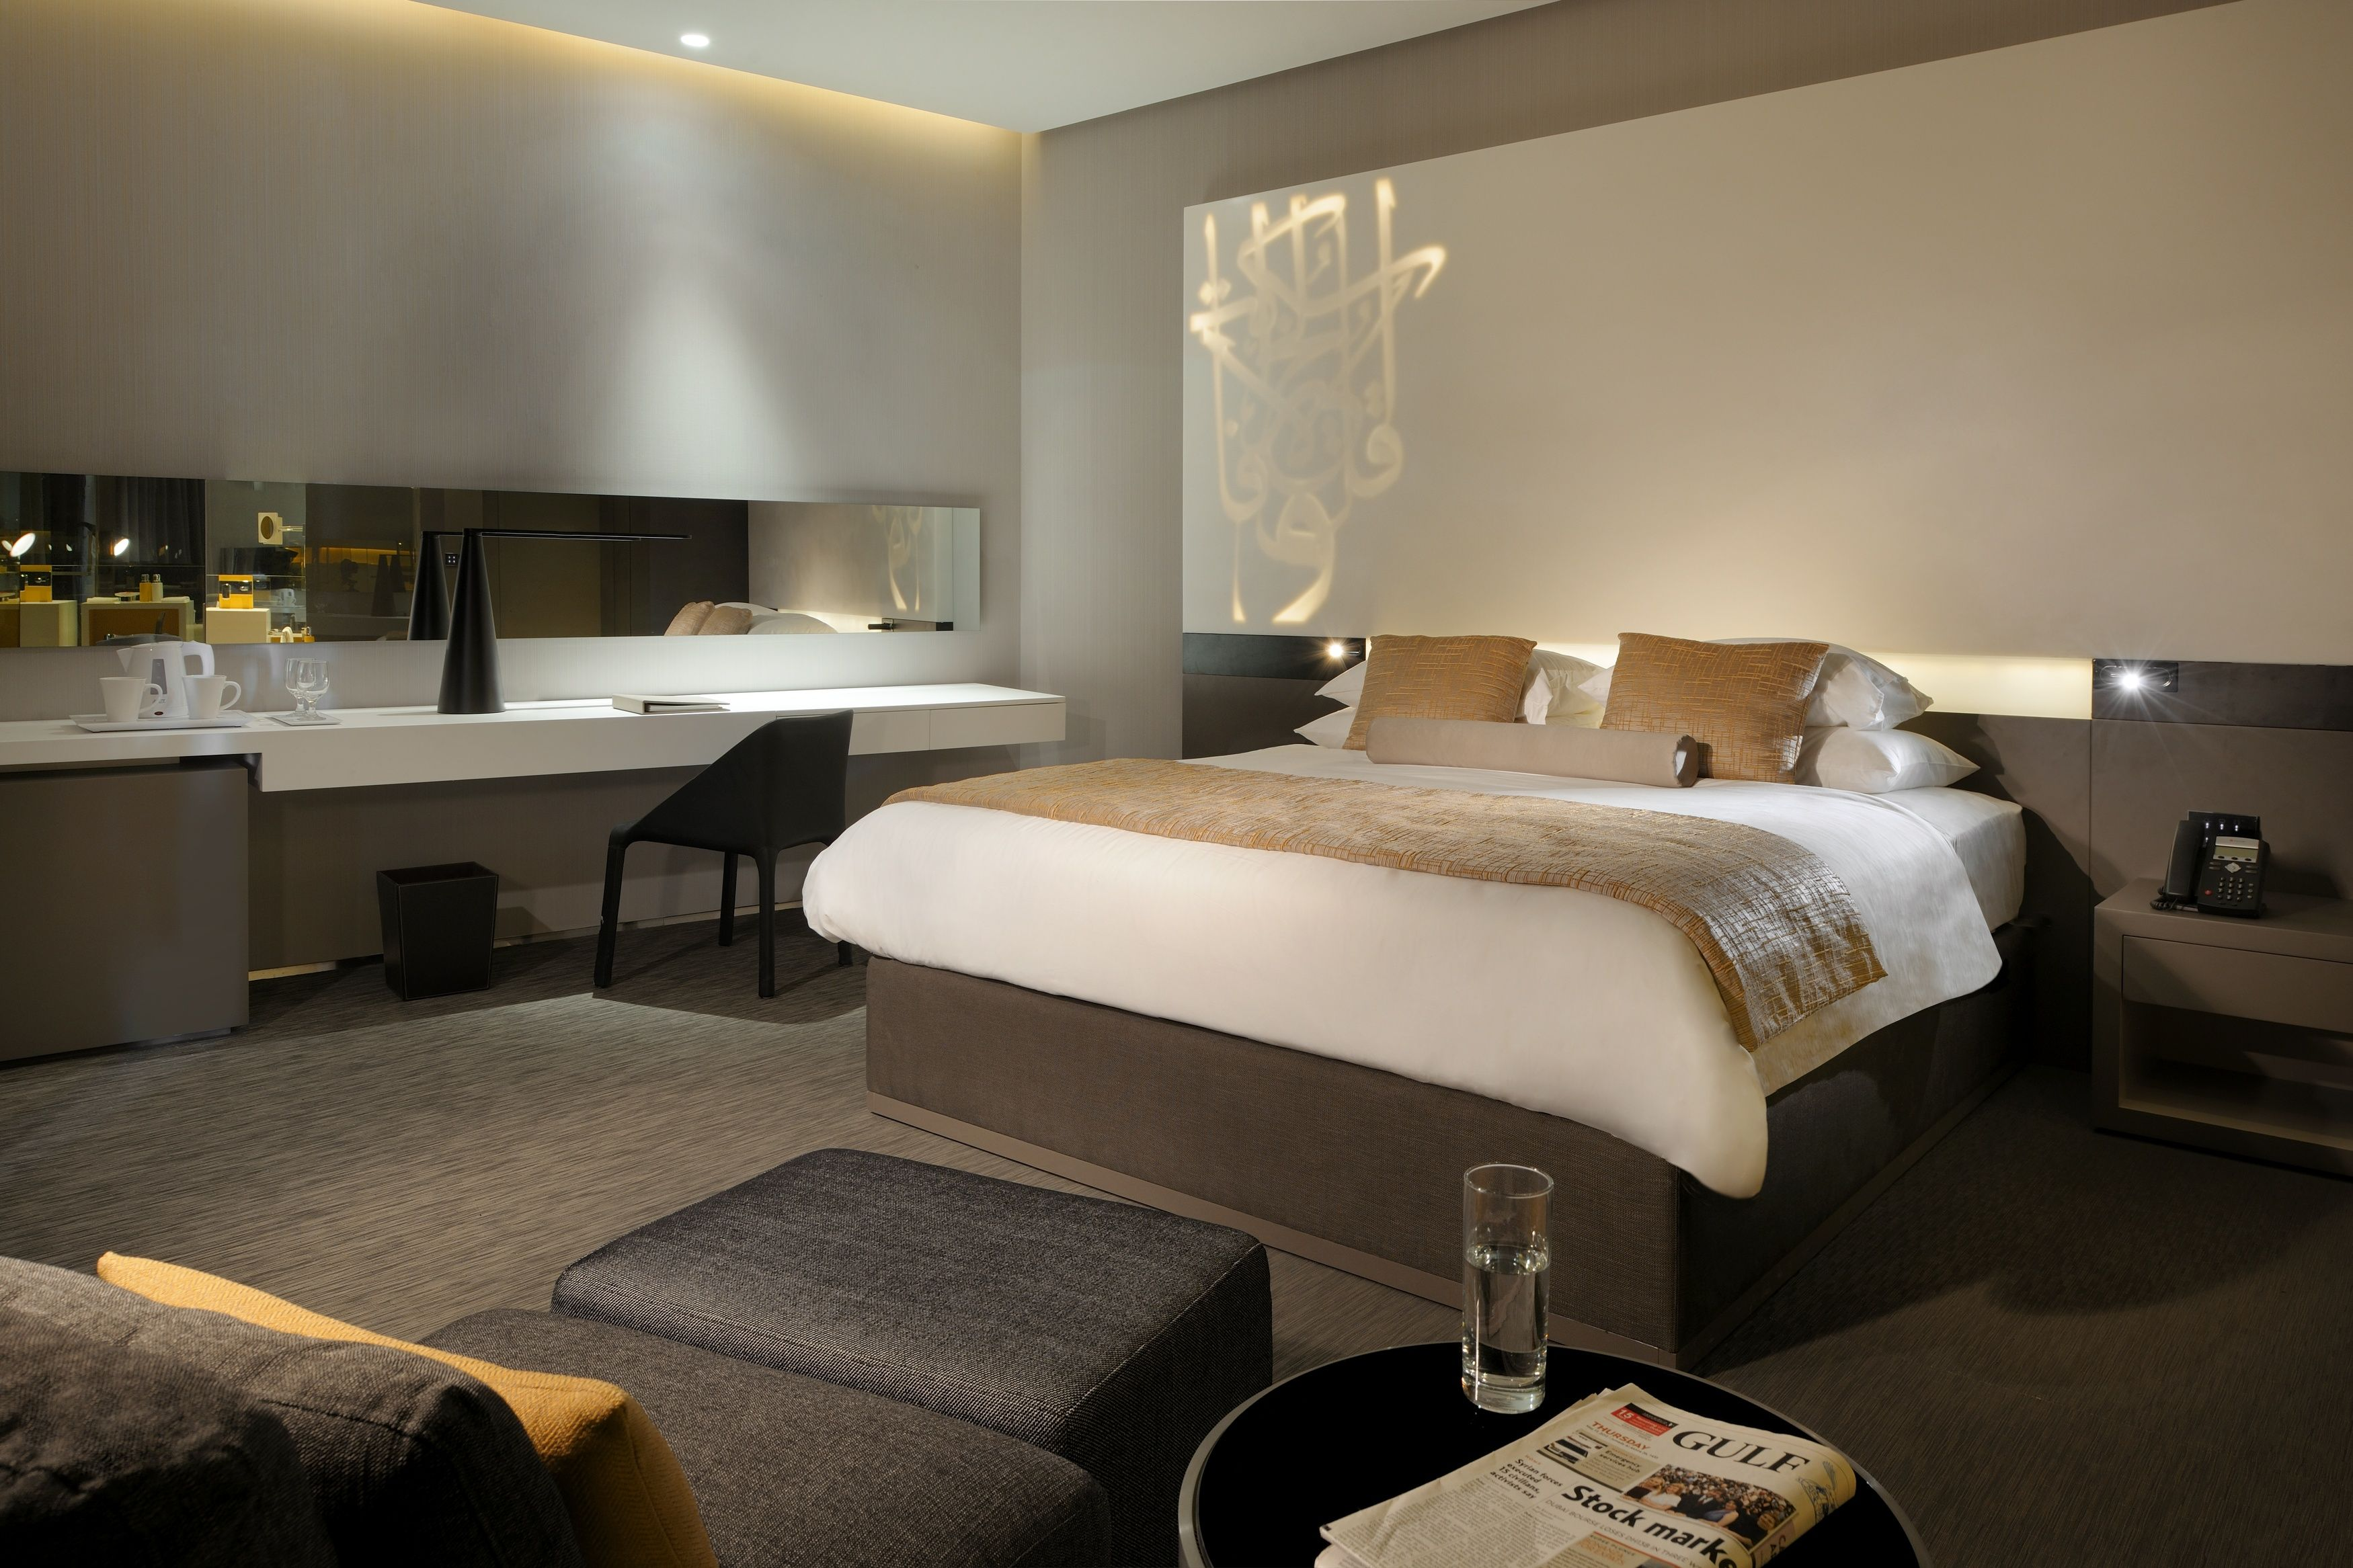 Intercontinental Hotel Bedroom With Images Hotel Bedroom Decor